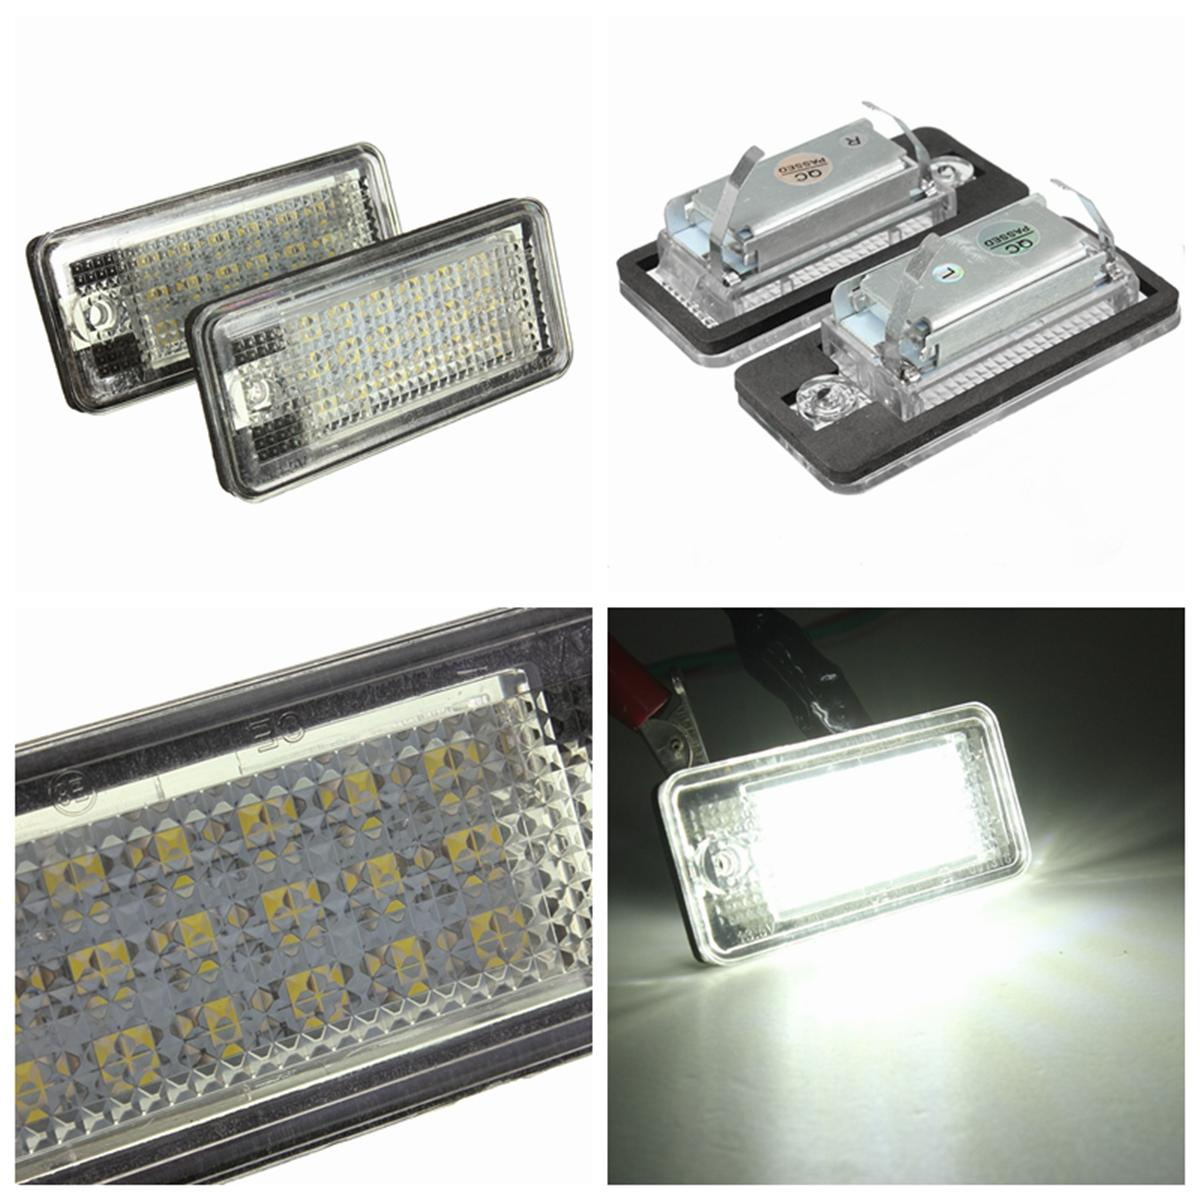 18 led license number plate light lamp for audi a3 a4 a6 a8 b6 b7 s3 18 led license number plate light lamp for audi a3 a4 a6 a8 b6 b7 s3 fandeluxe Image collections